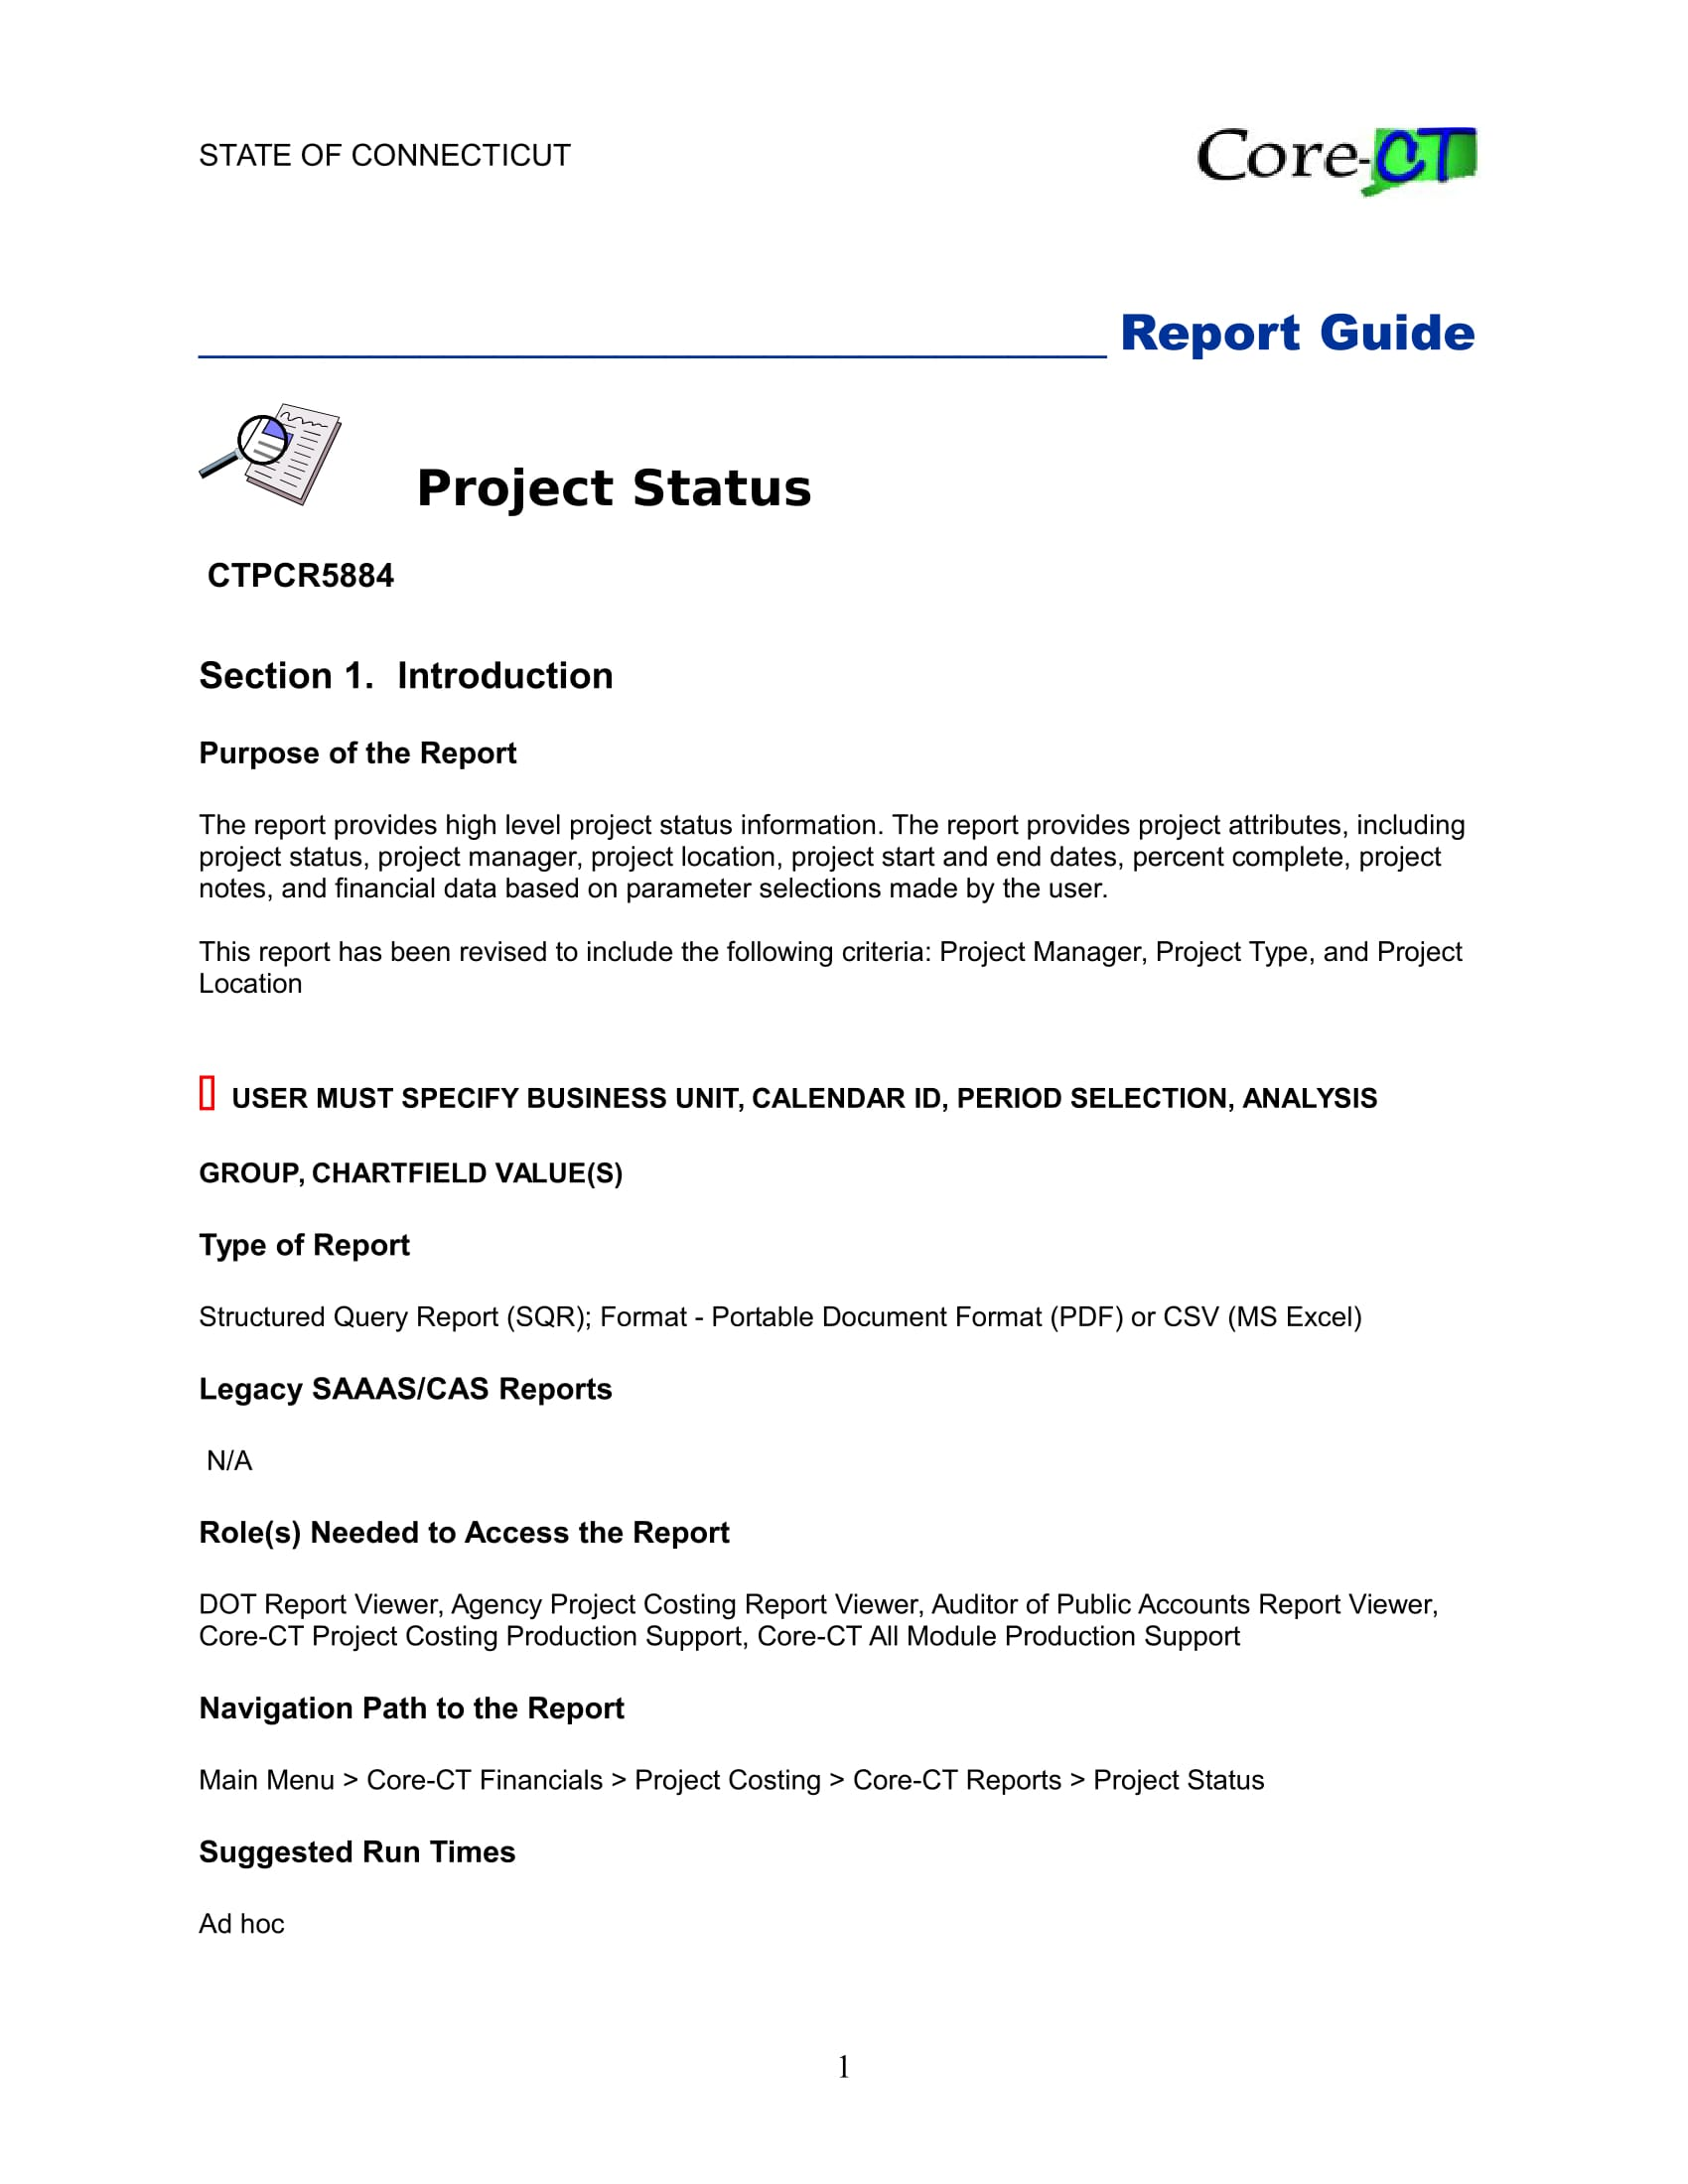 project status report guide example